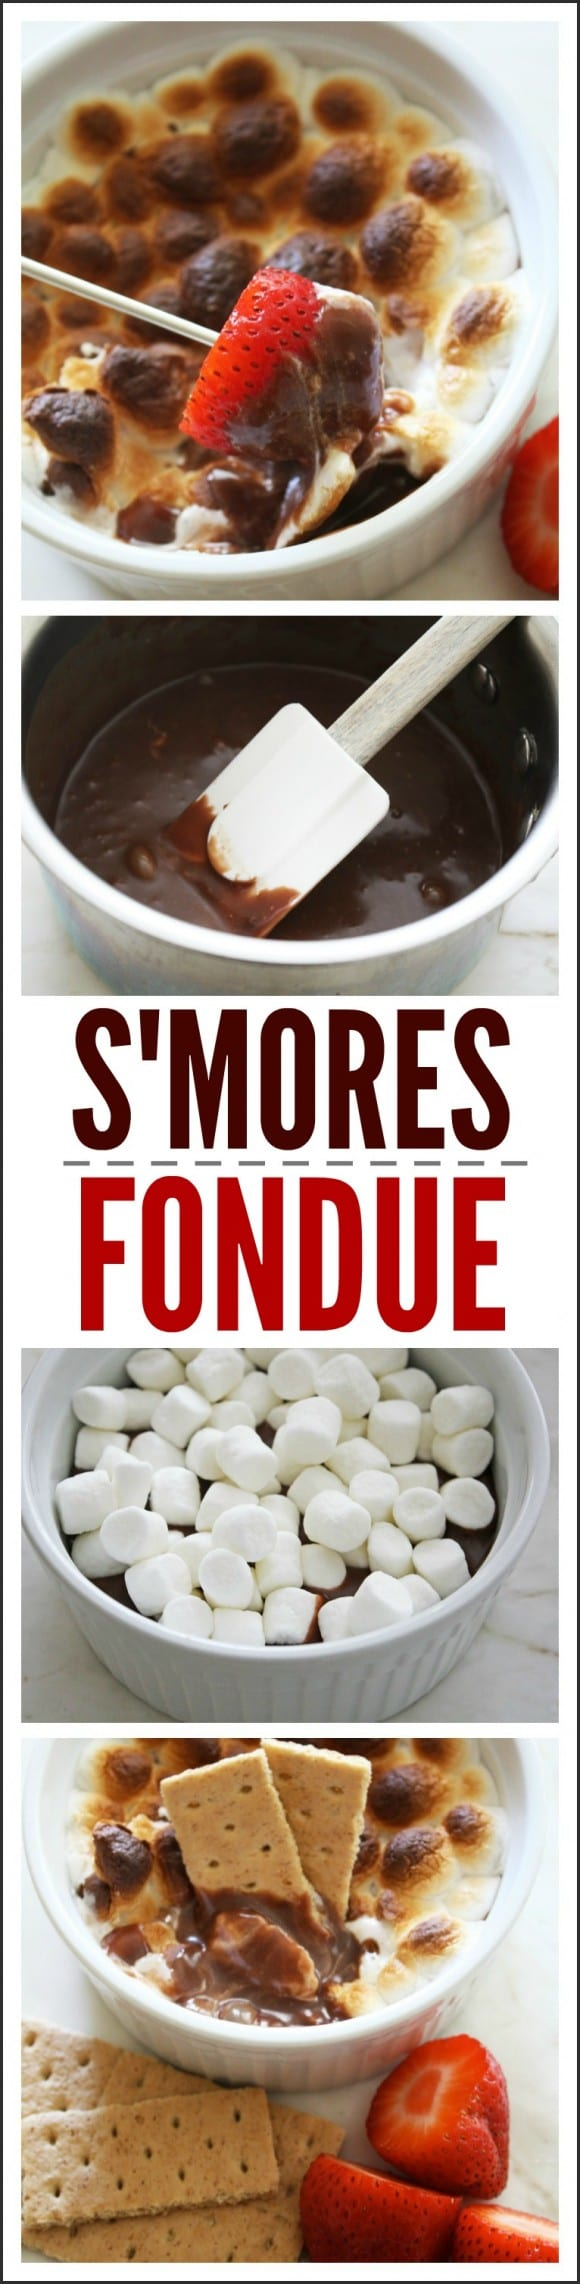 S'mores Fondue Recipe | CatchMyParty.com